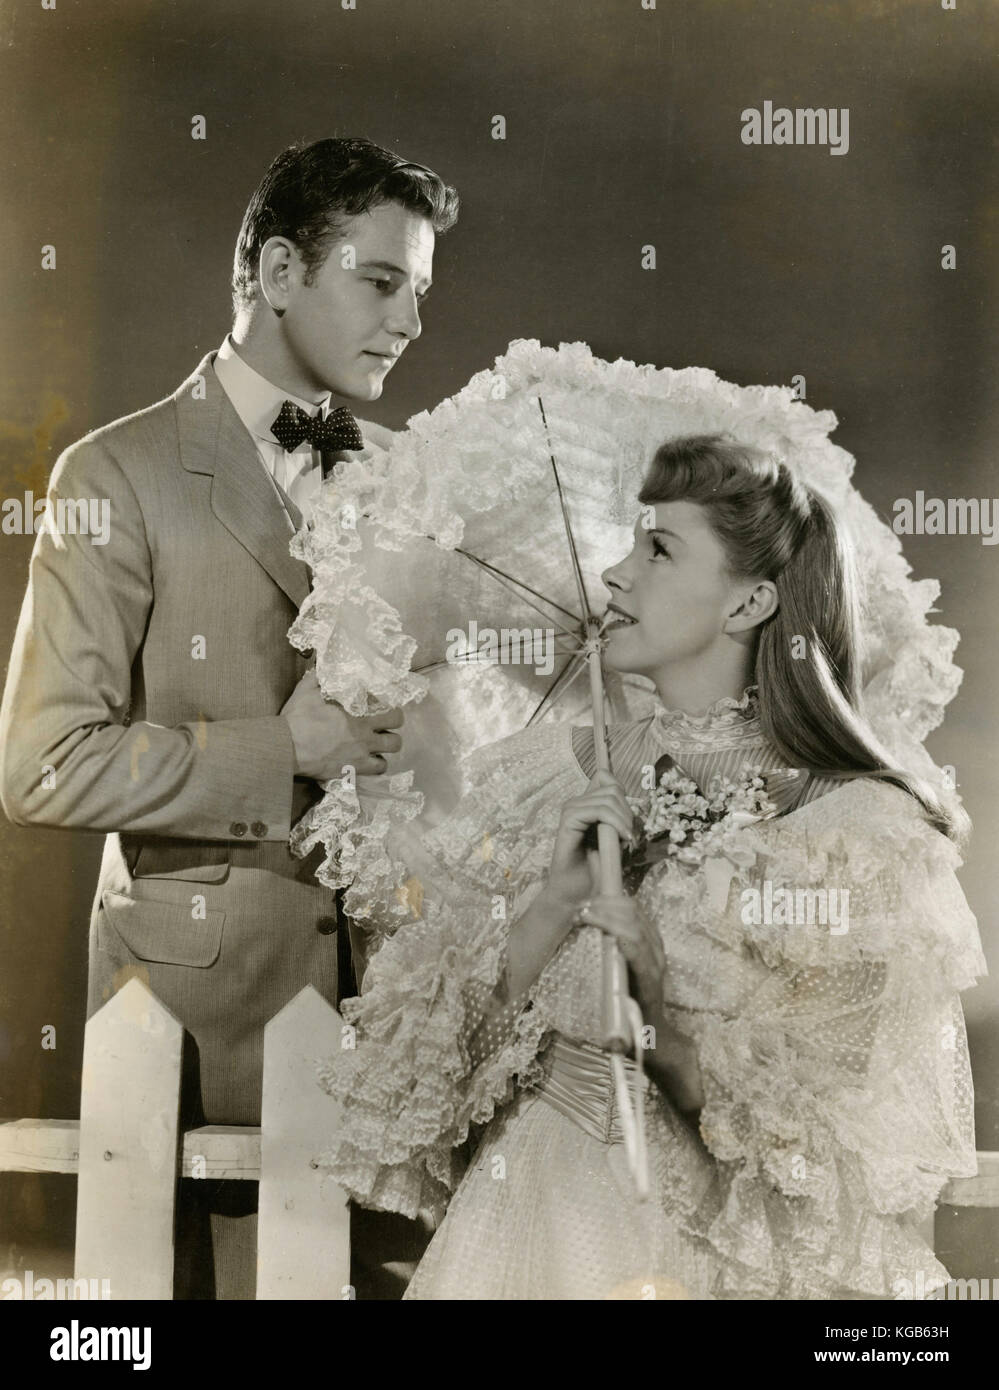 Actors Judy Garland and Tom Drake in the movie Meet Me in St Louis, 1944 - Stock Image